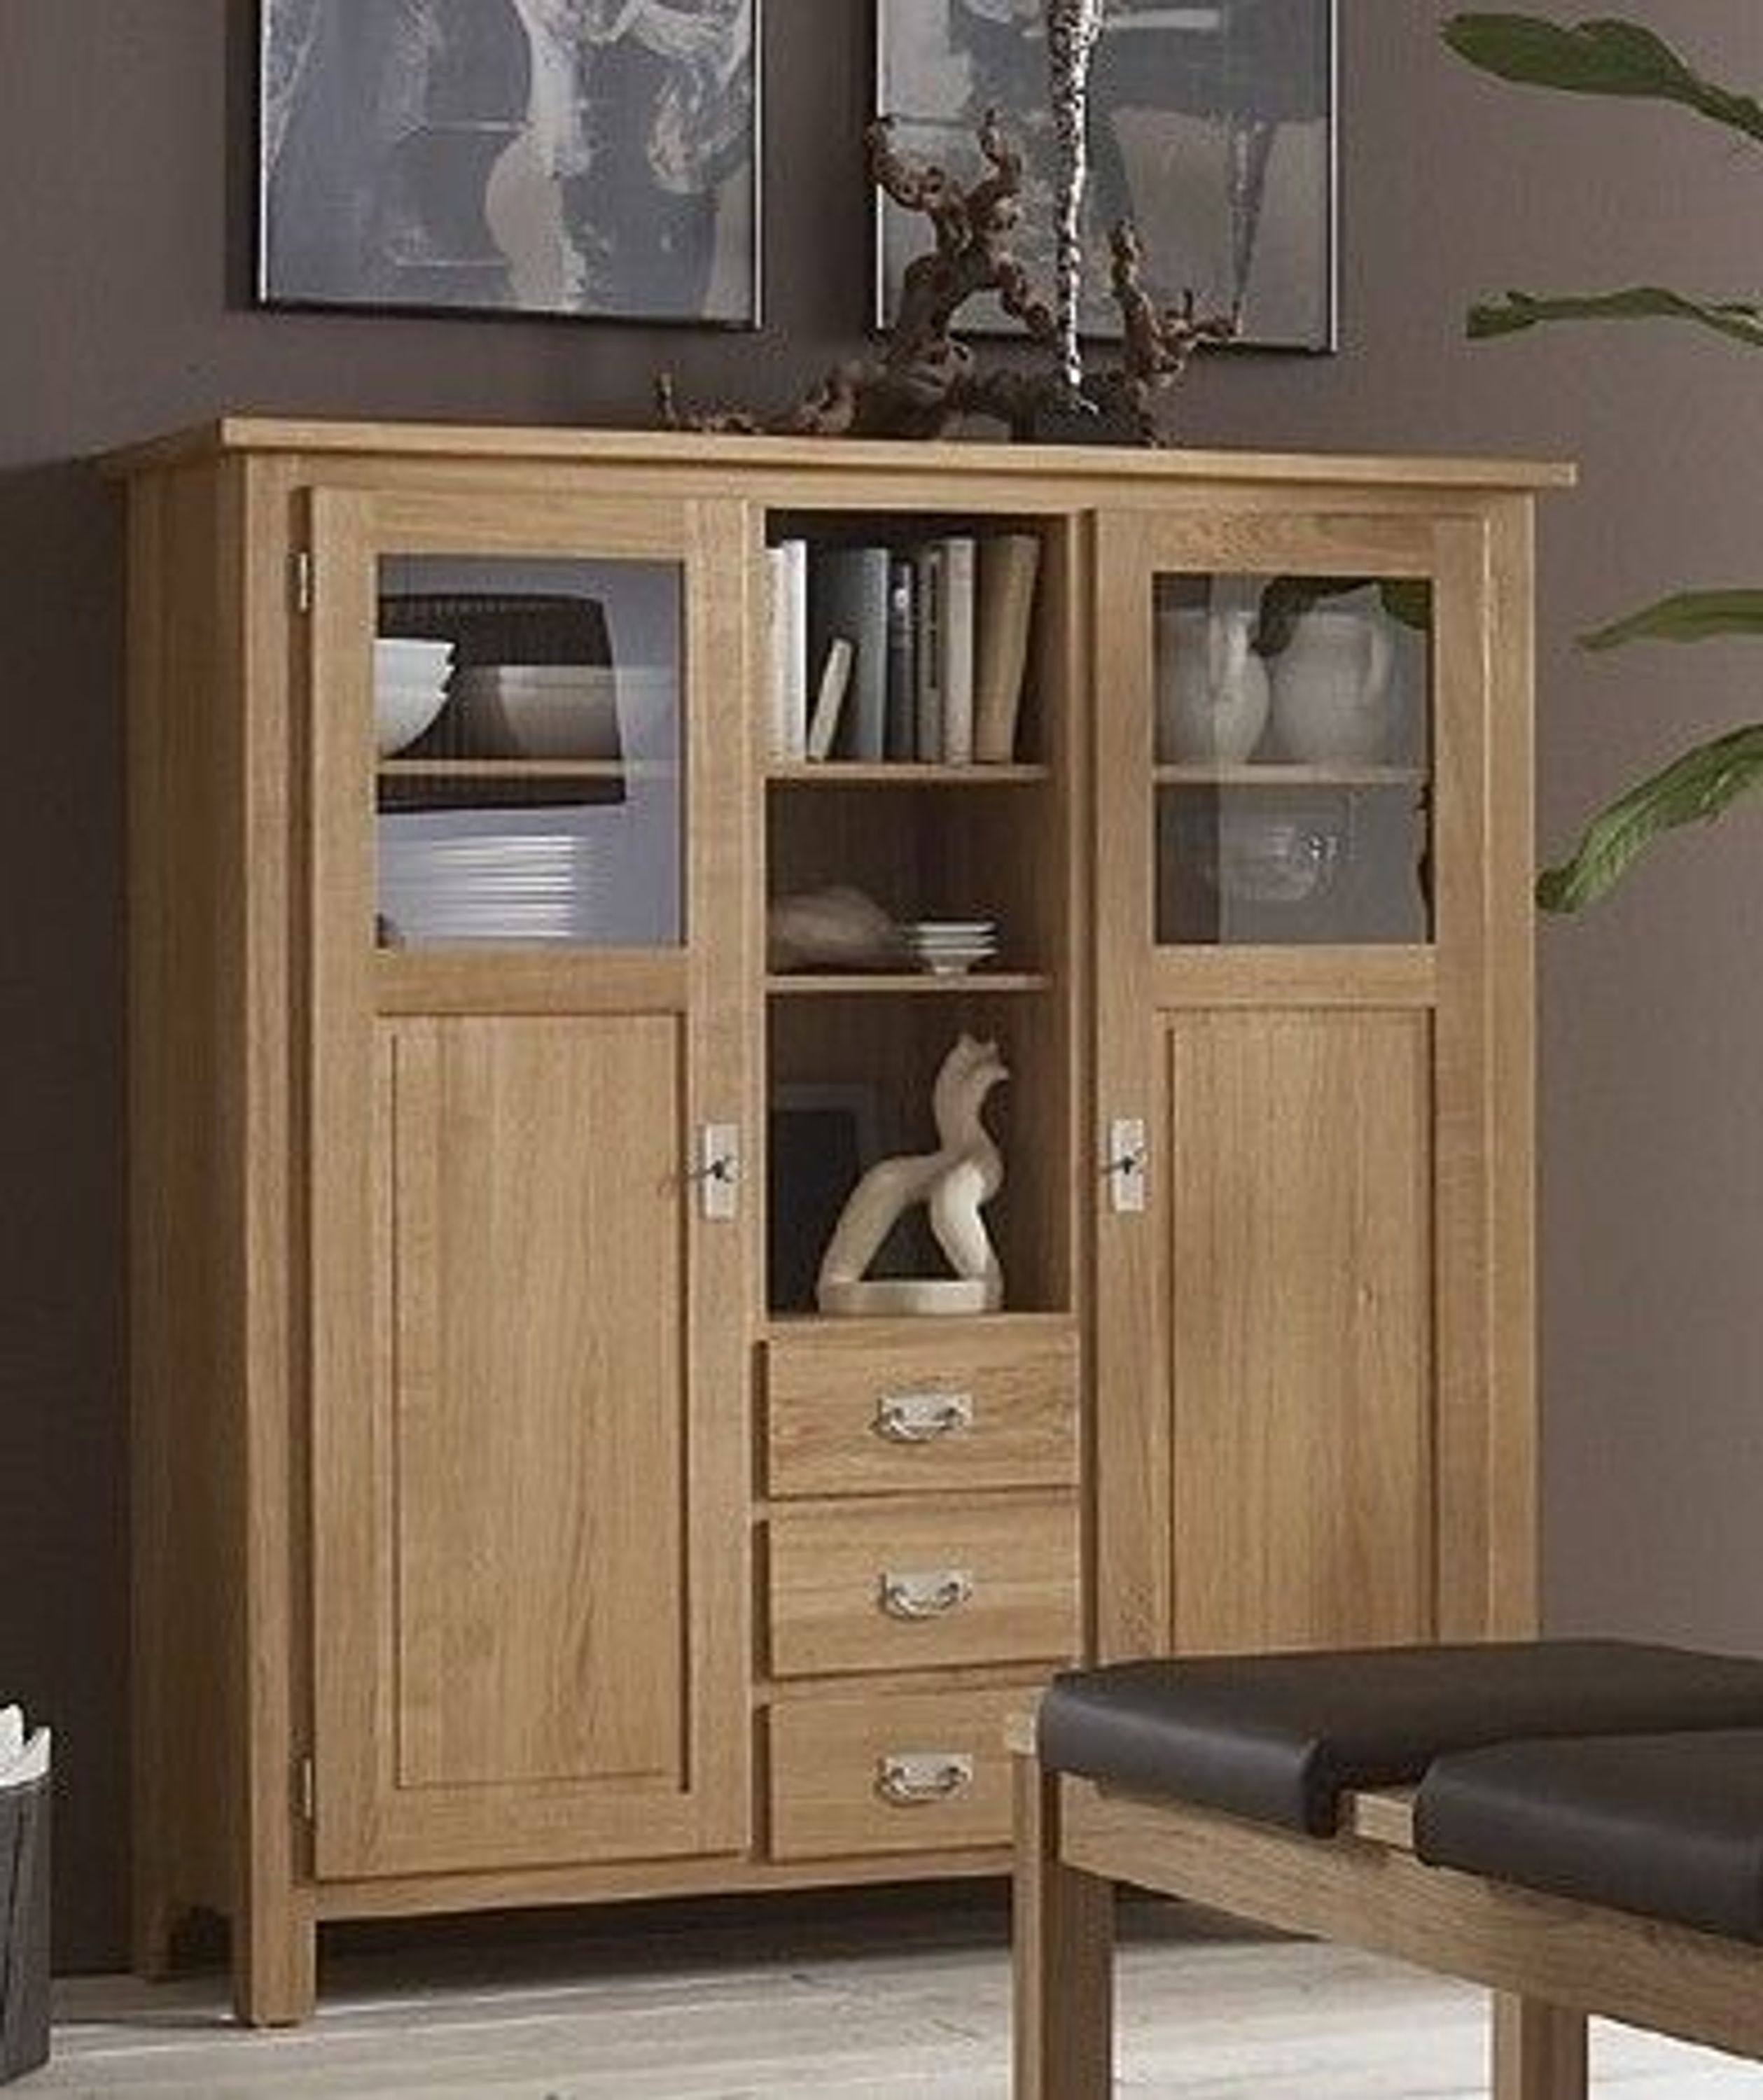 highboard vitrinenschrank sideboard wohnzimmerschrank eiche massiv ge lt kaufen bei. Black Bedroom Furniture Sets. Home Design Ideas